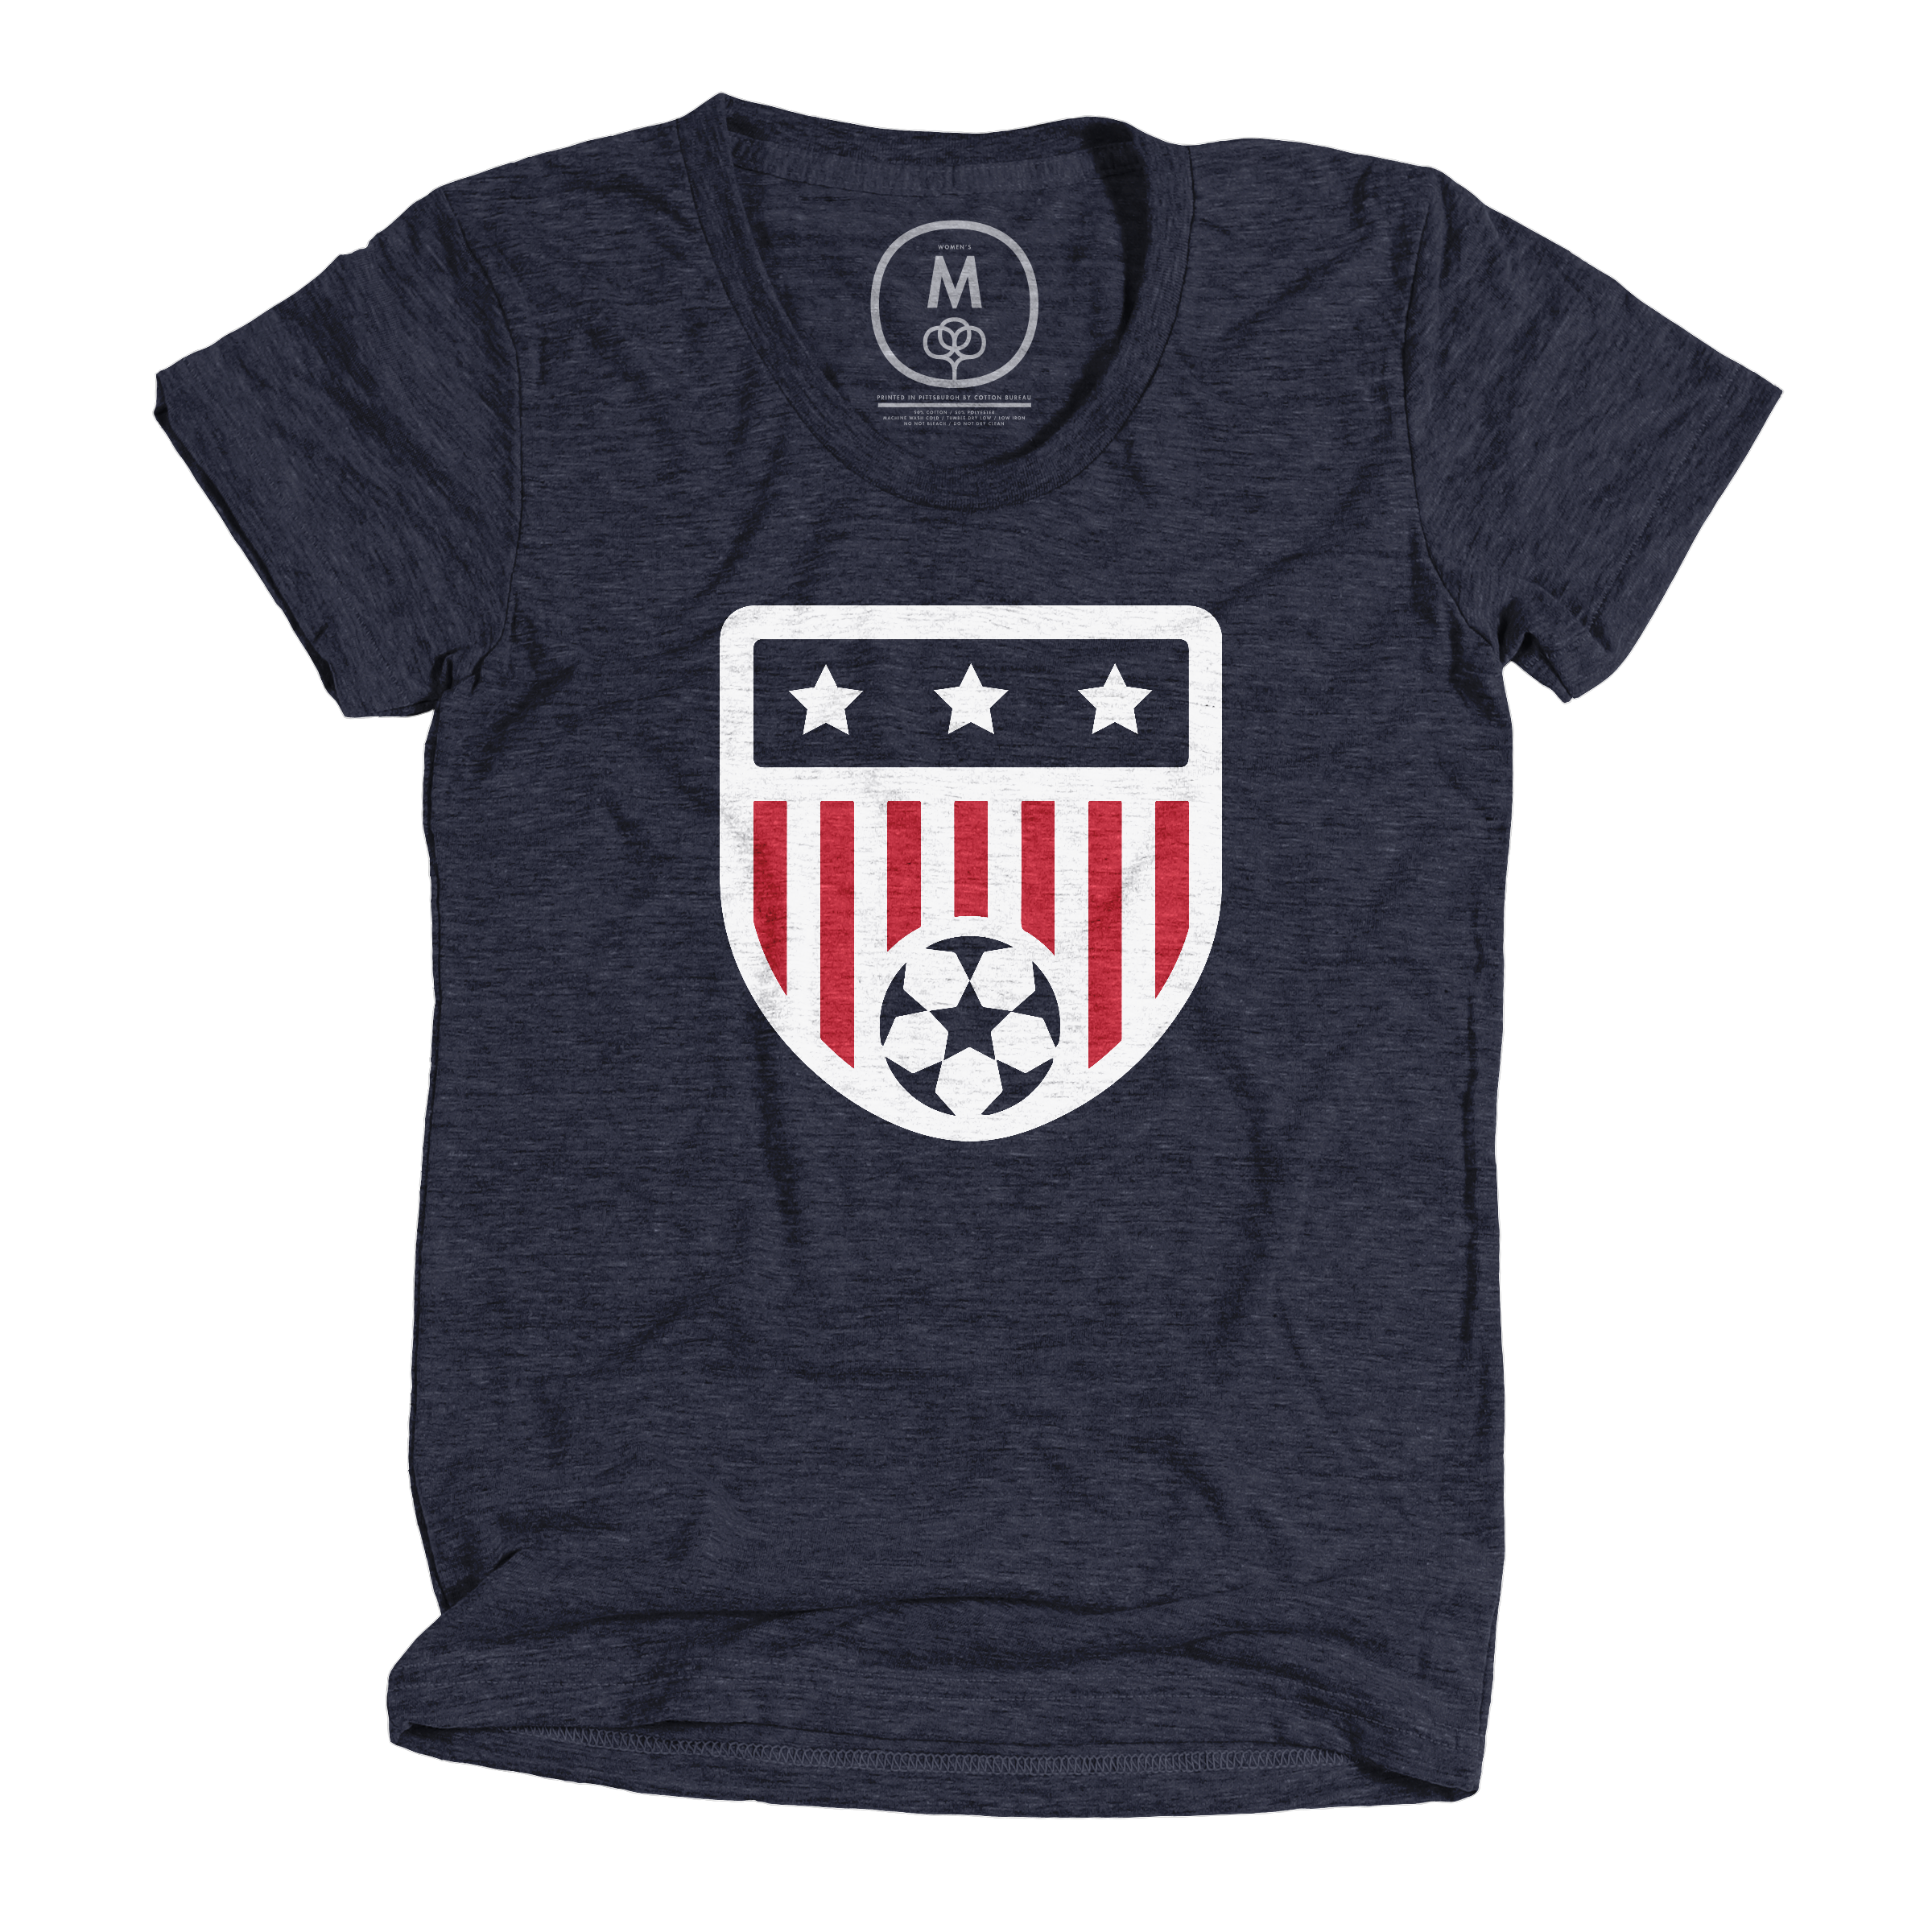 USA, All The Way! Vintage Navy (Women's)